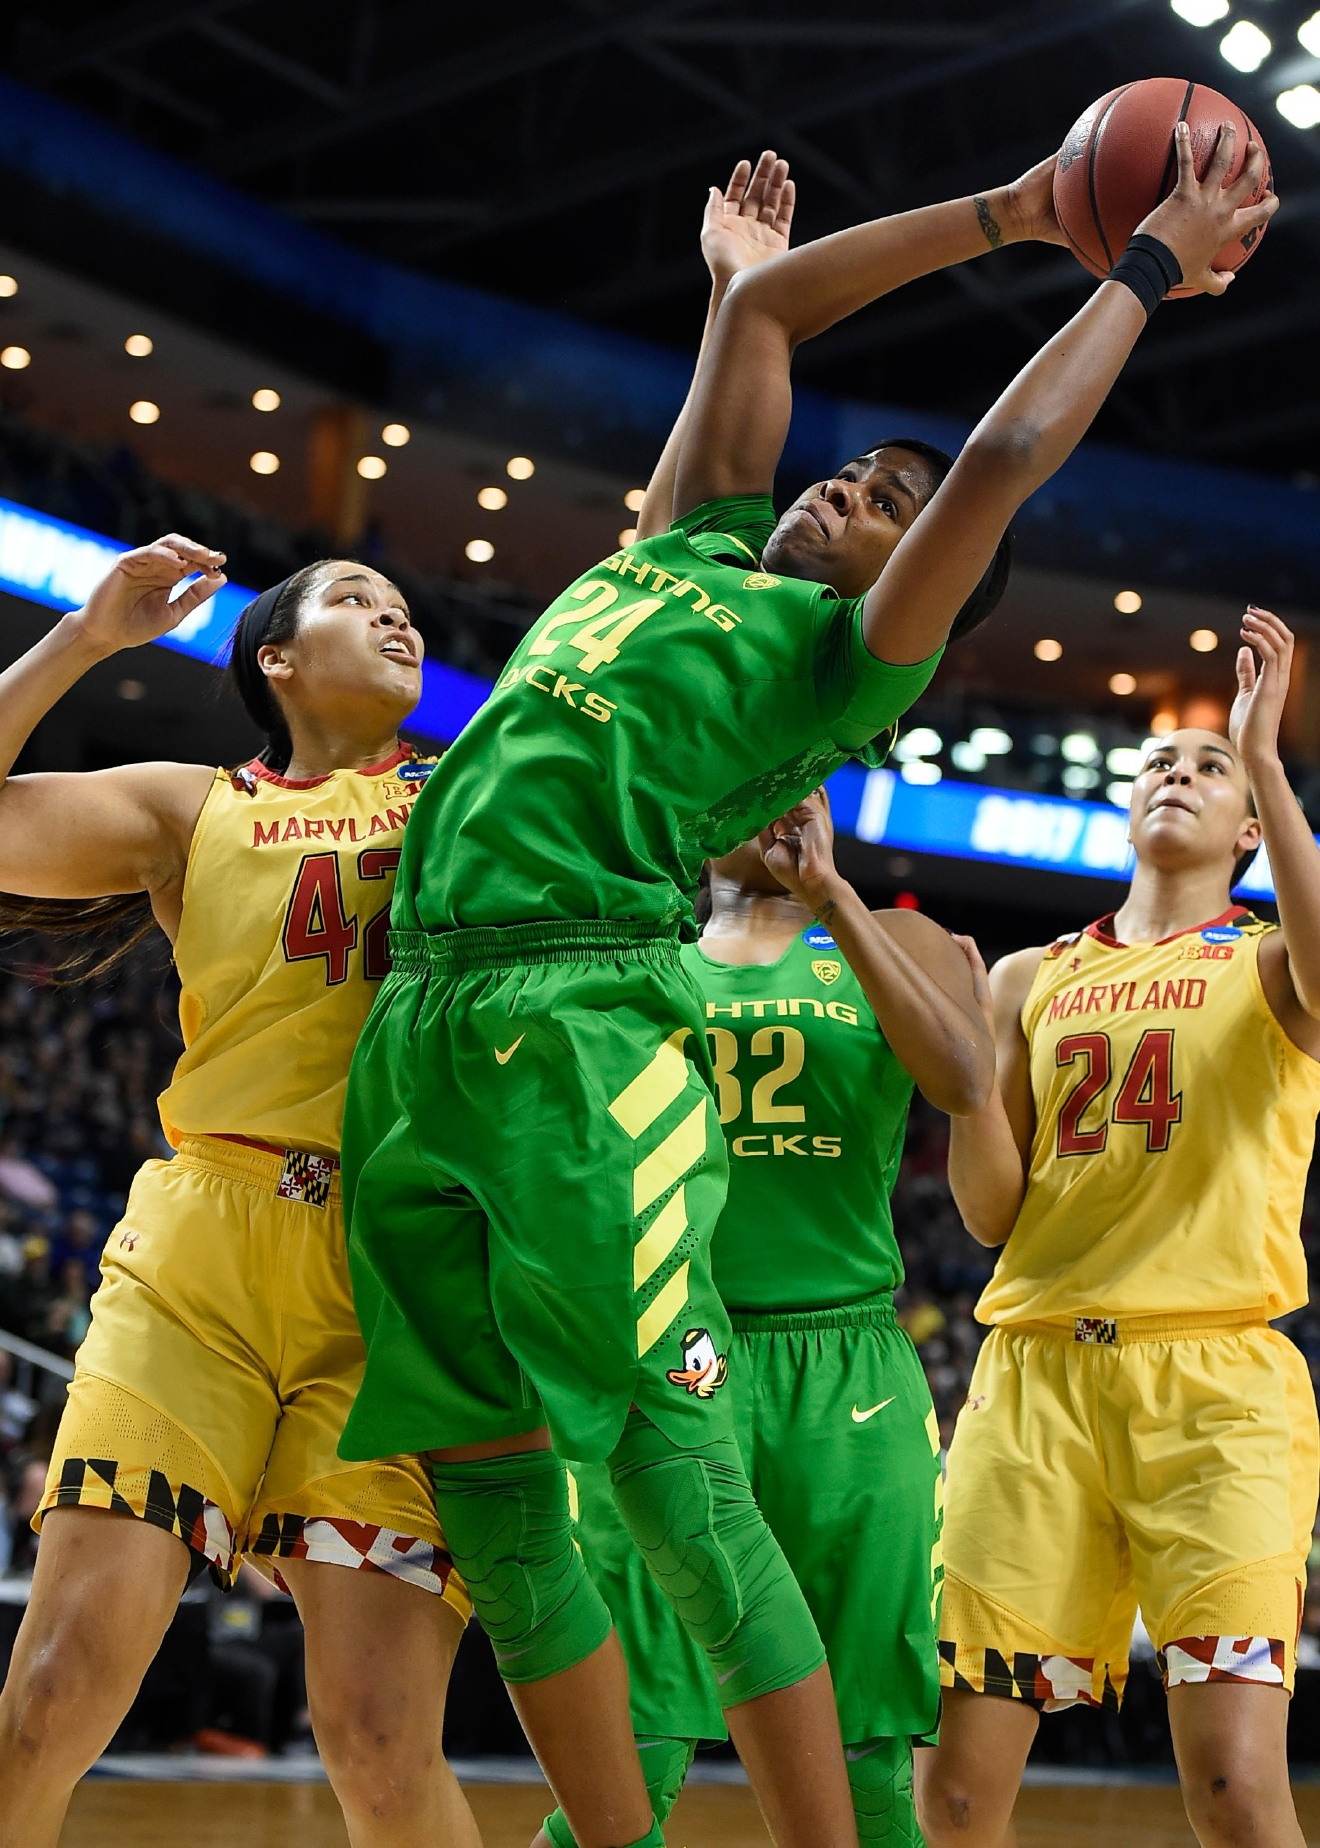 Oregon's Ruthy Hebard, center, pulls down an offensive rebound as Maryland's Brionna Jones, left, defends, during the first half of a regional semifinal game in the NCAA women's college basketball tournament, Saturday, March 25, 2017, in Bridgeport, Conn. (AP Photo/Jessica Hill)